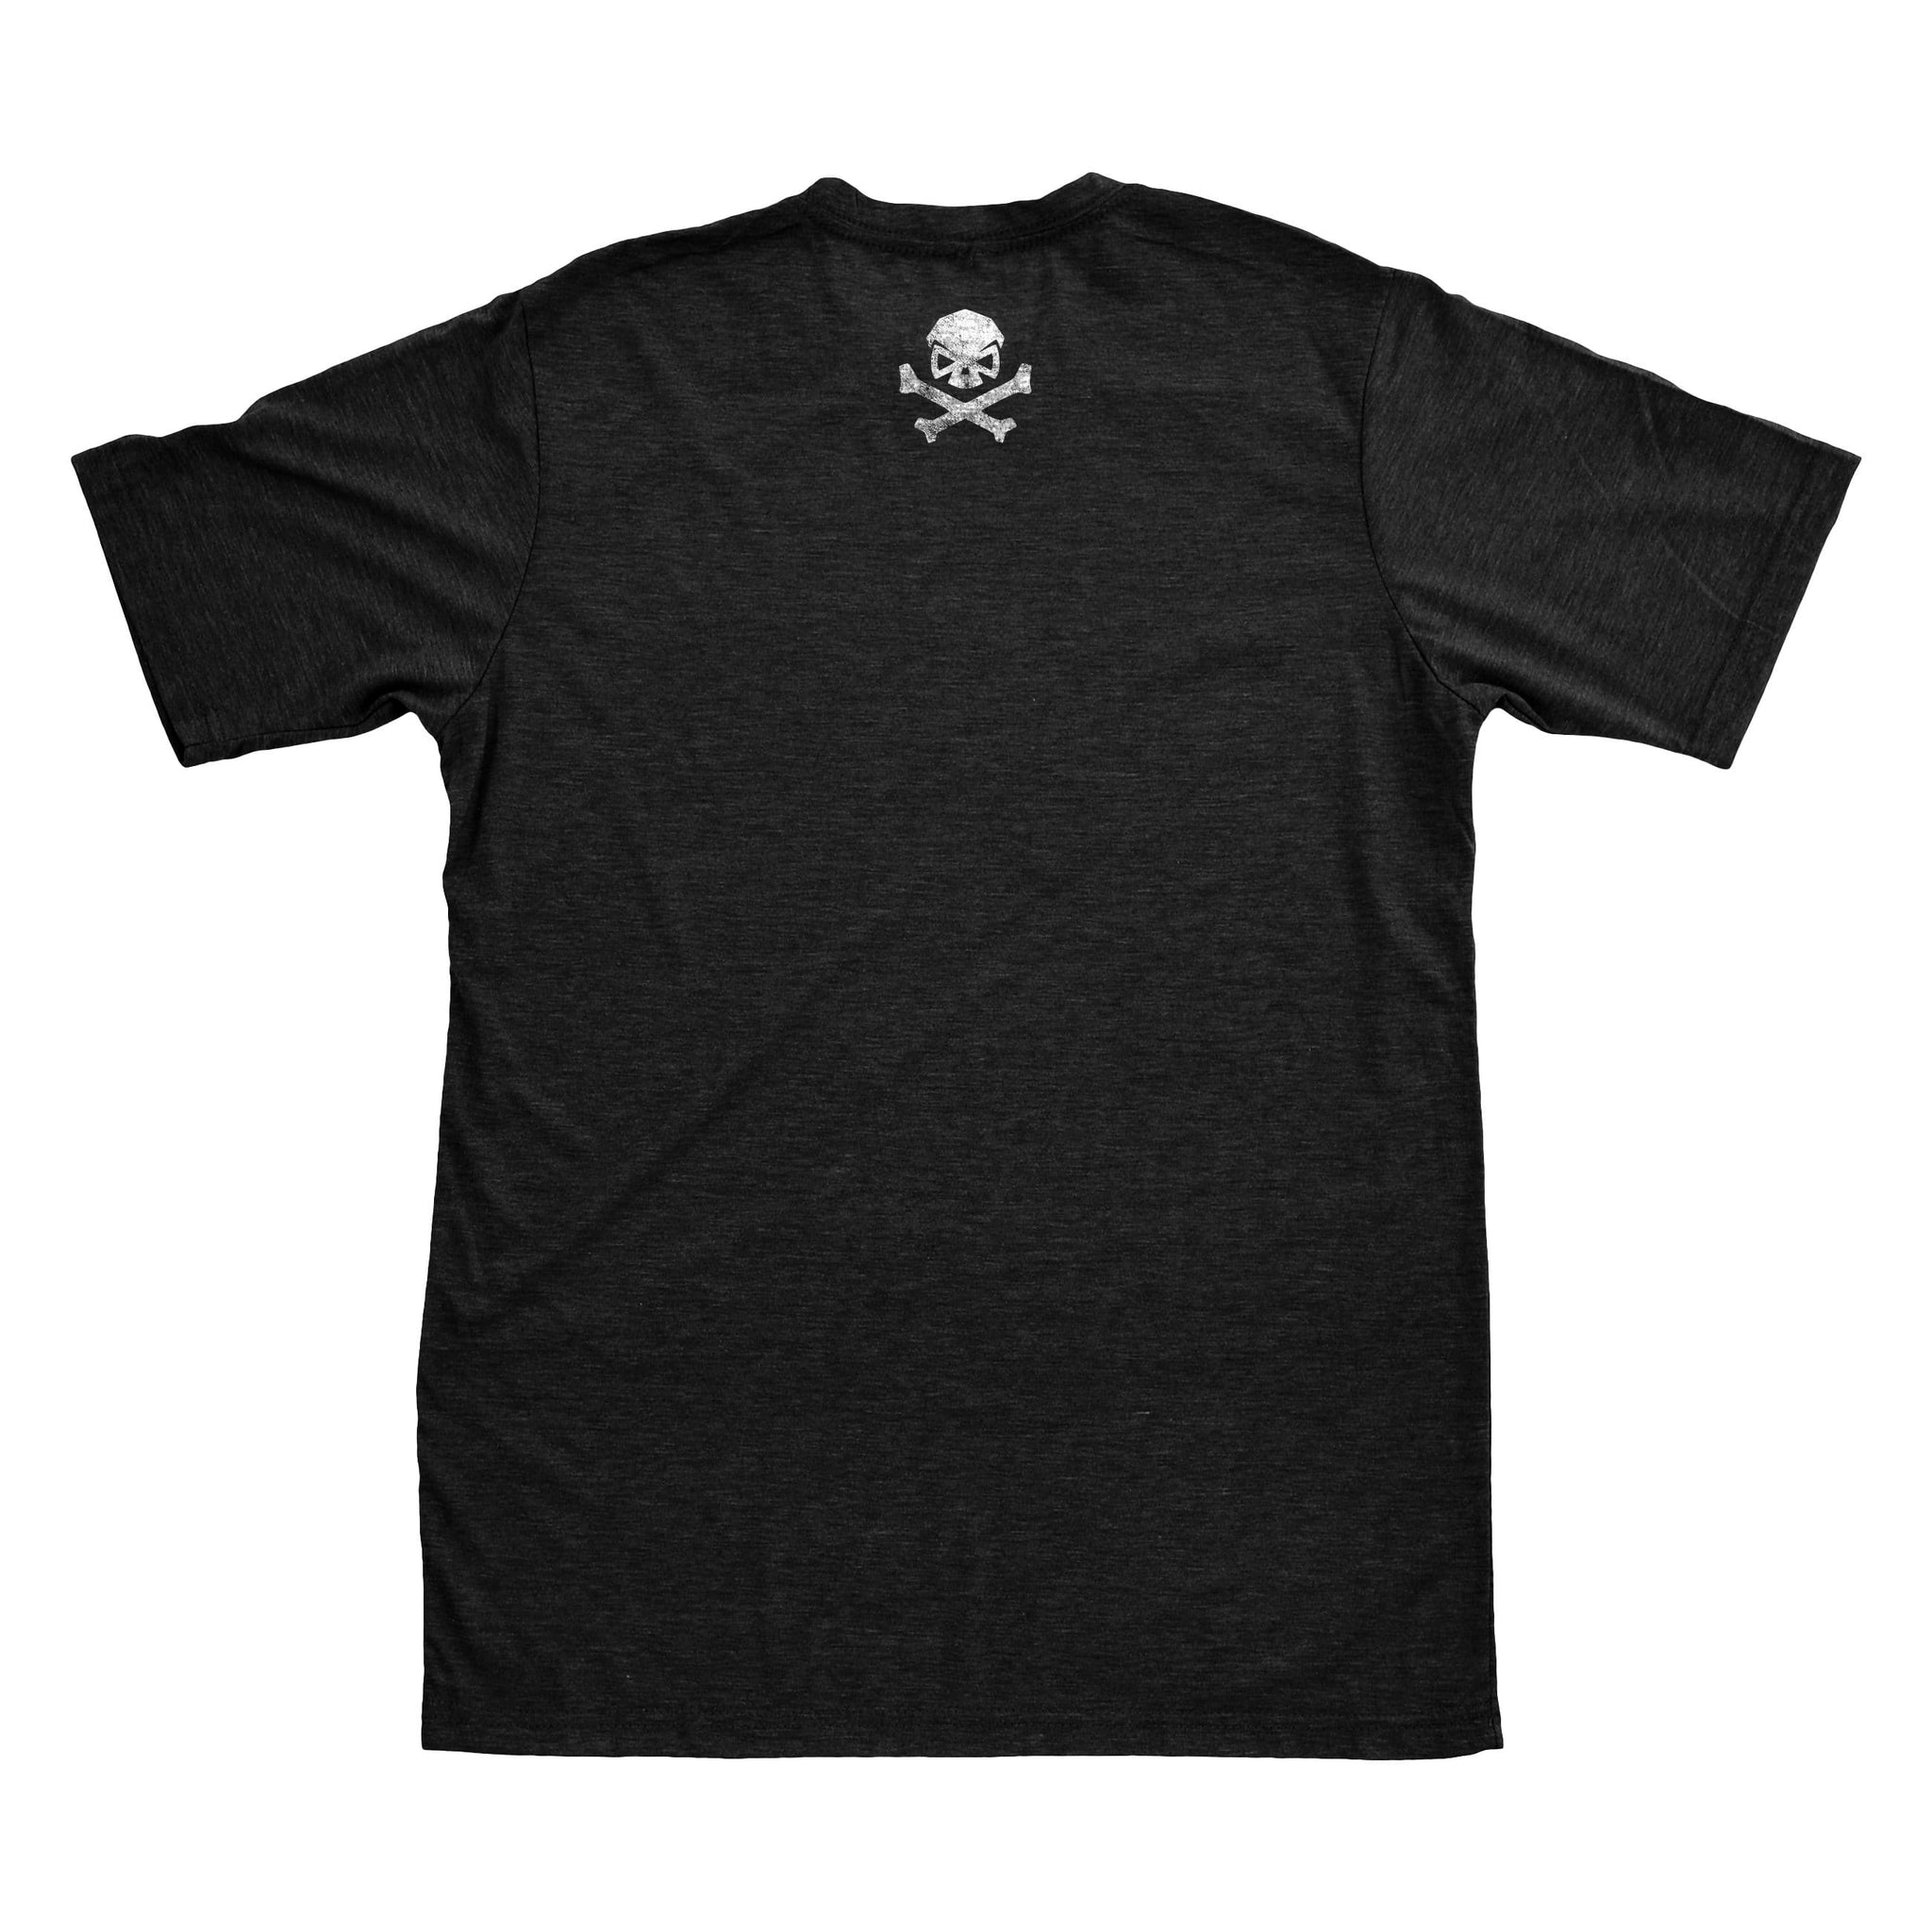 Dark Side -  - T-Shirts - Pipe Hitters Union